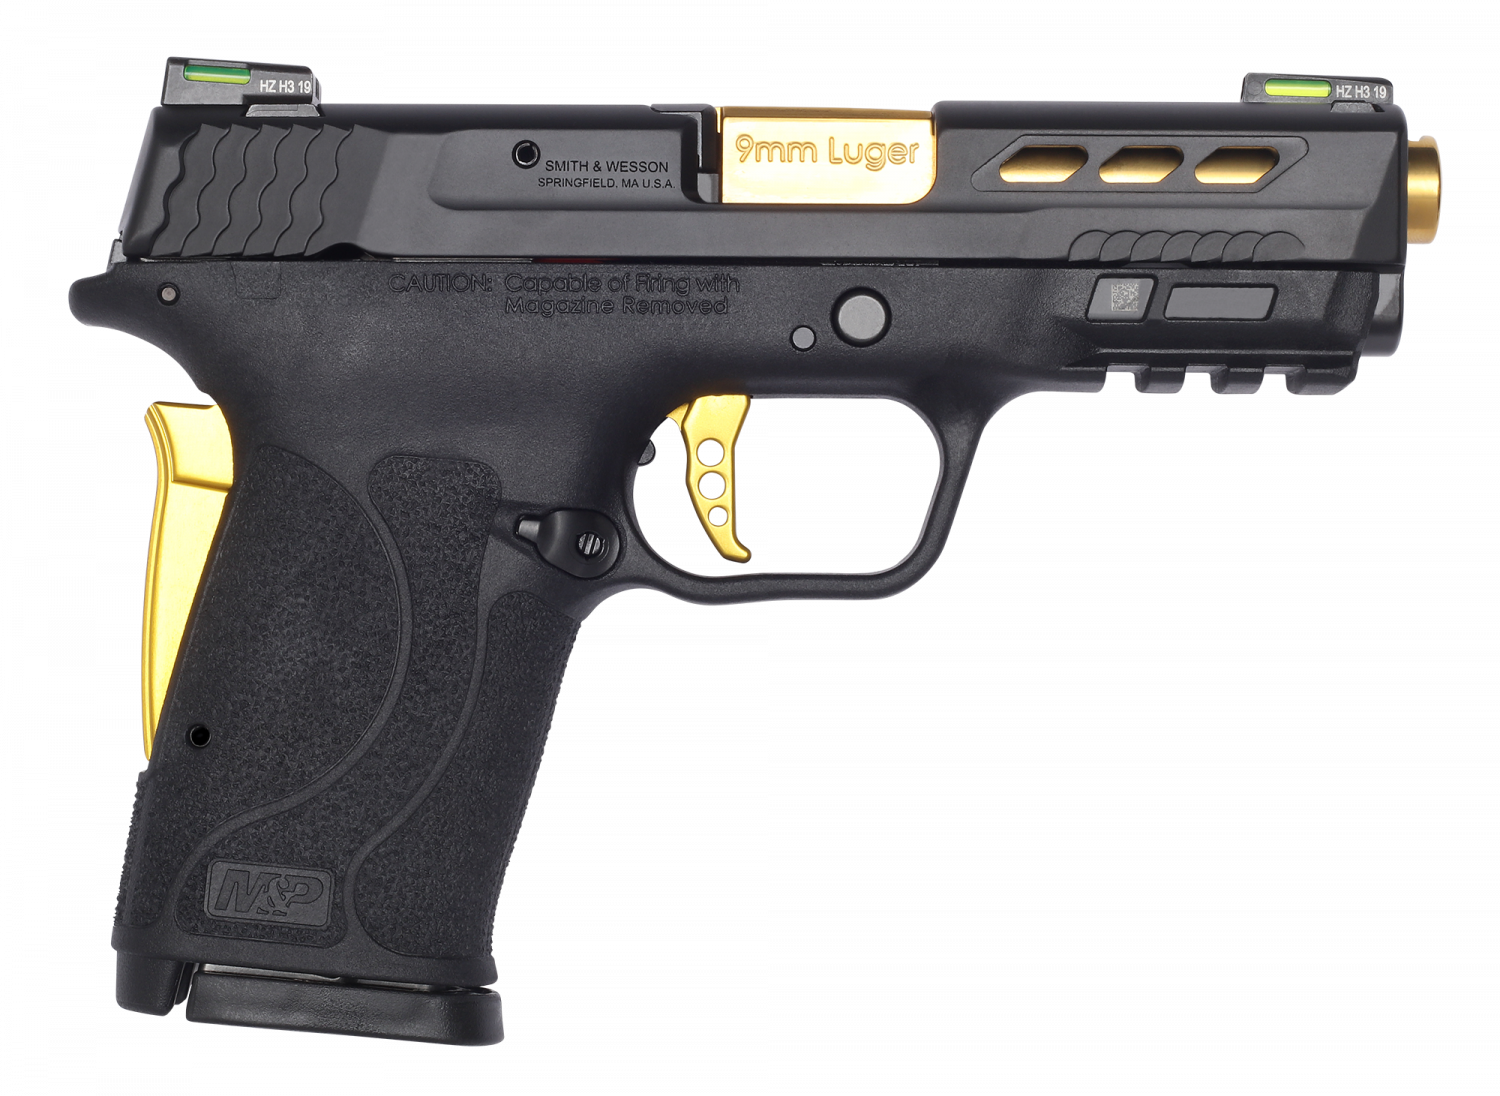 Smith & Wesson Launches Performance Center M&P9 Shield EZ